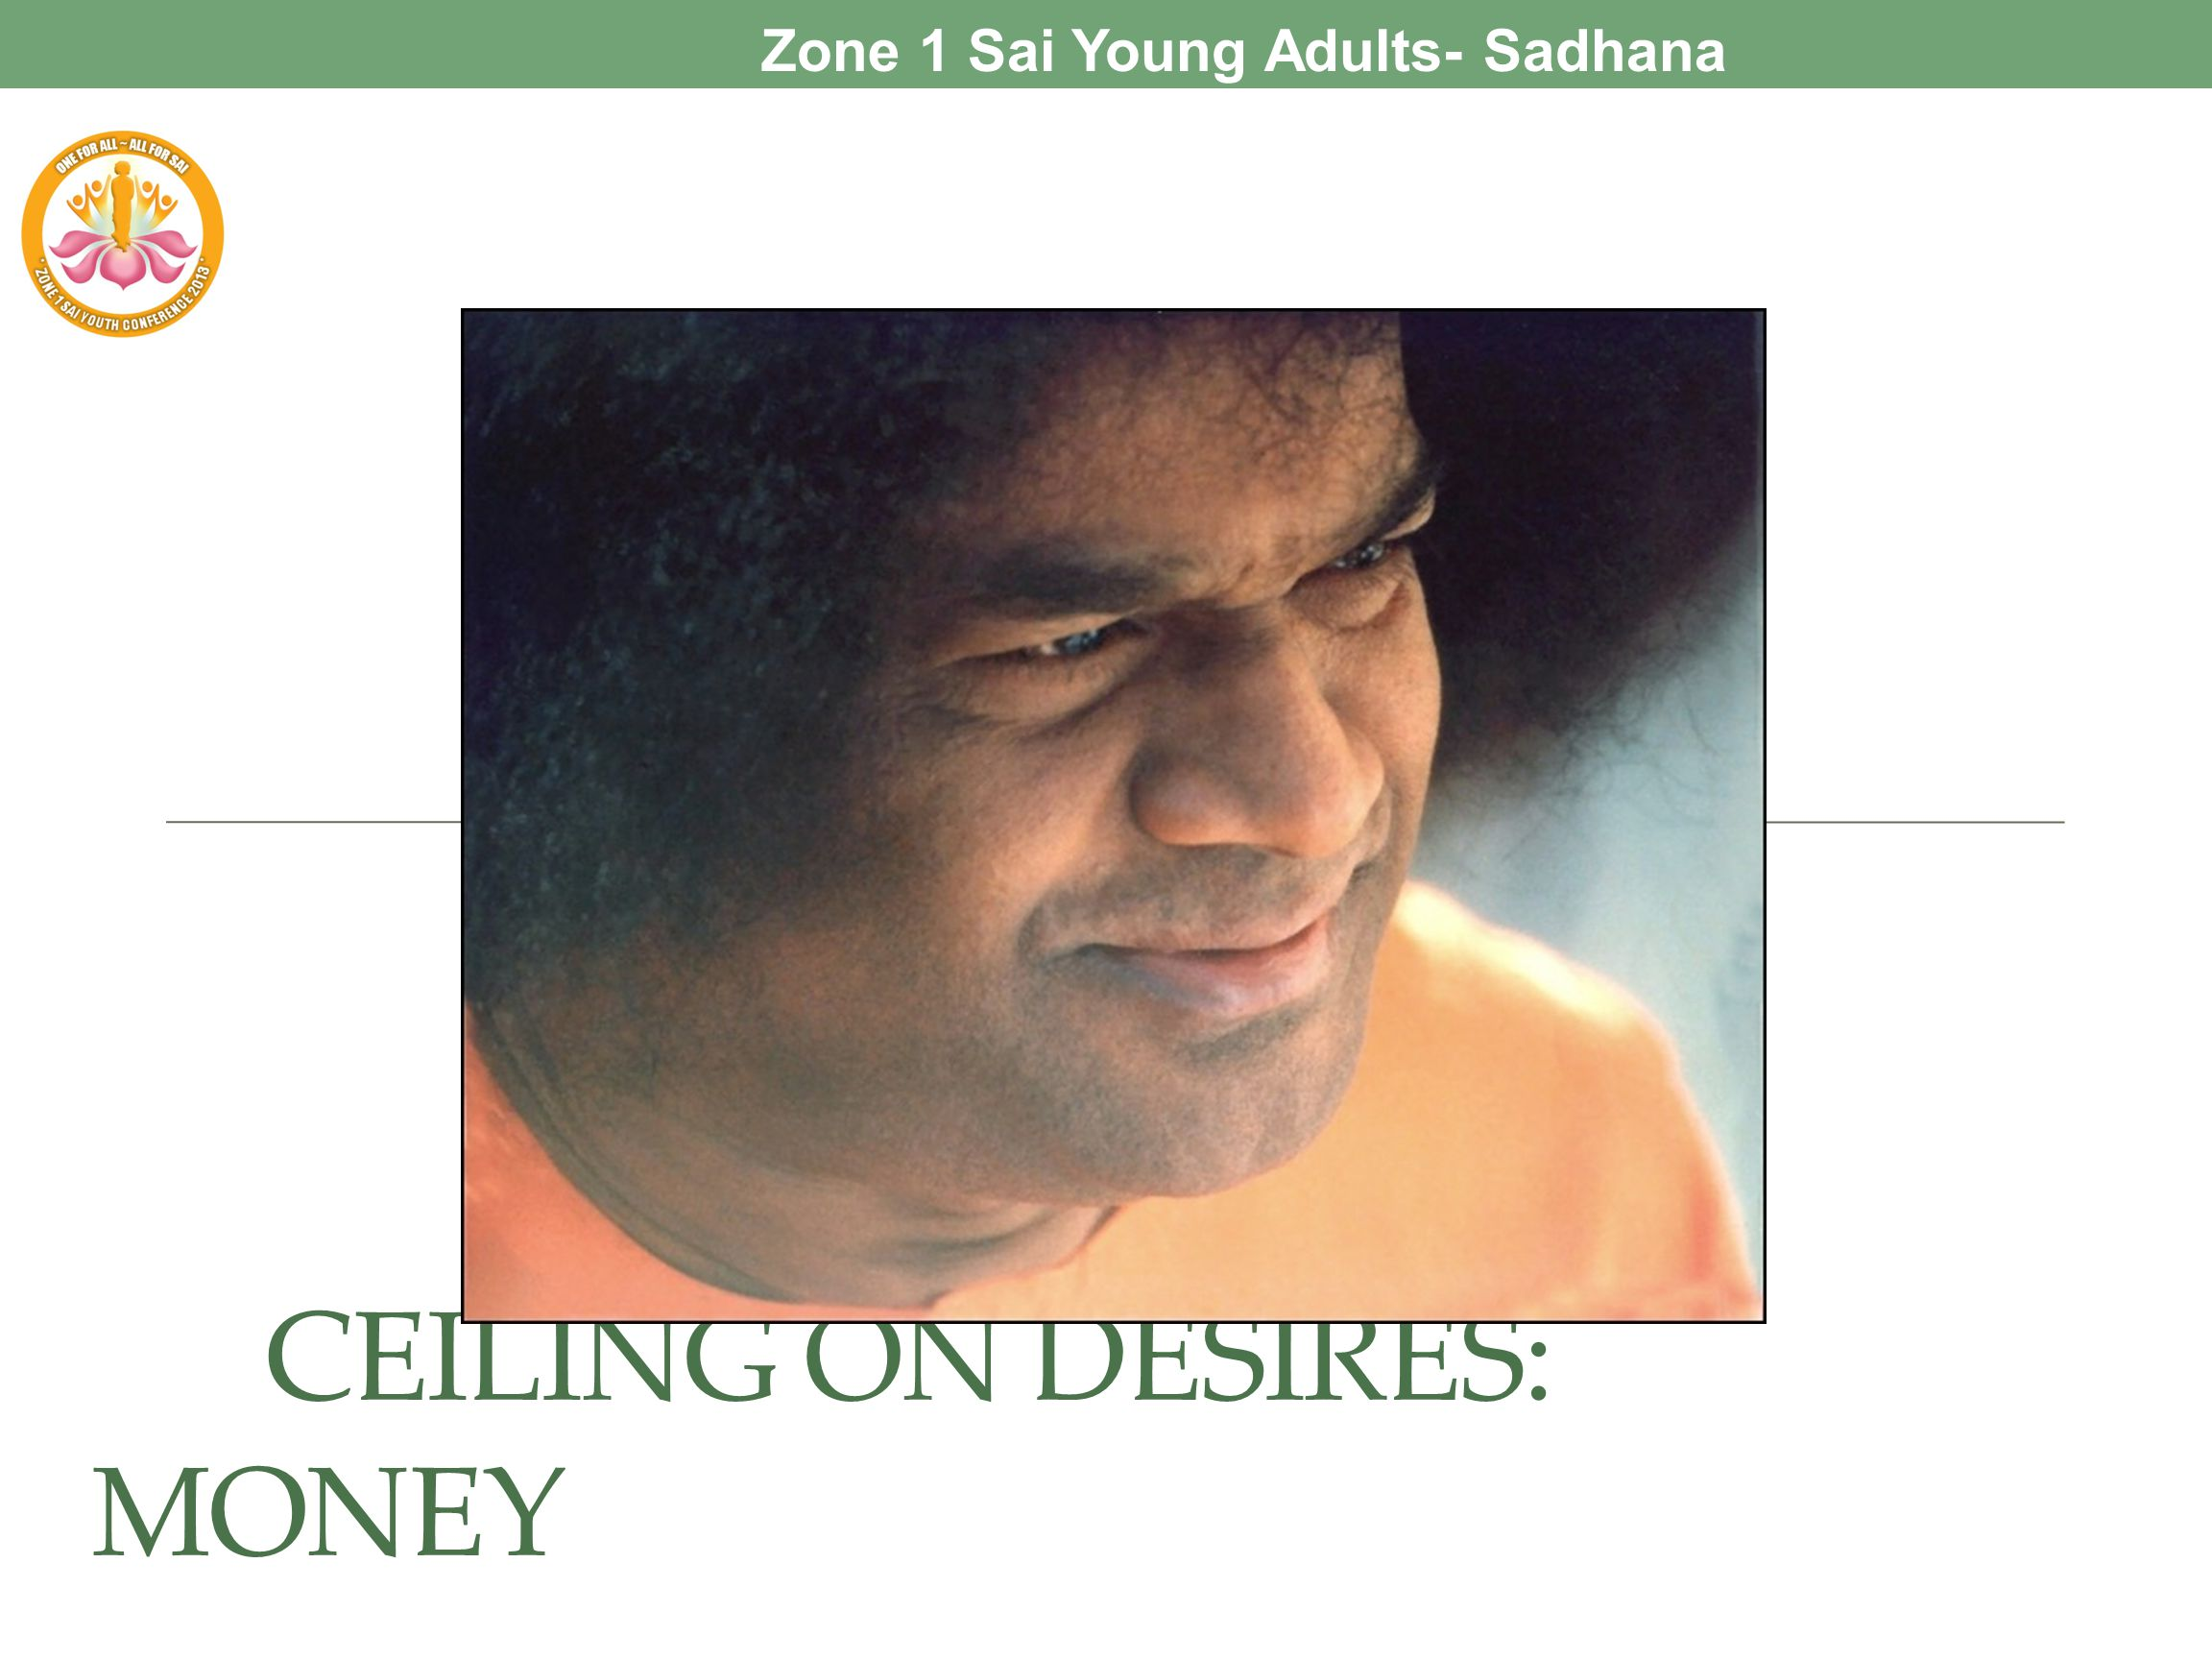 CEILING ON DESIRES: MONEY Zone 1 Sai Young Adults- Sadhana Program